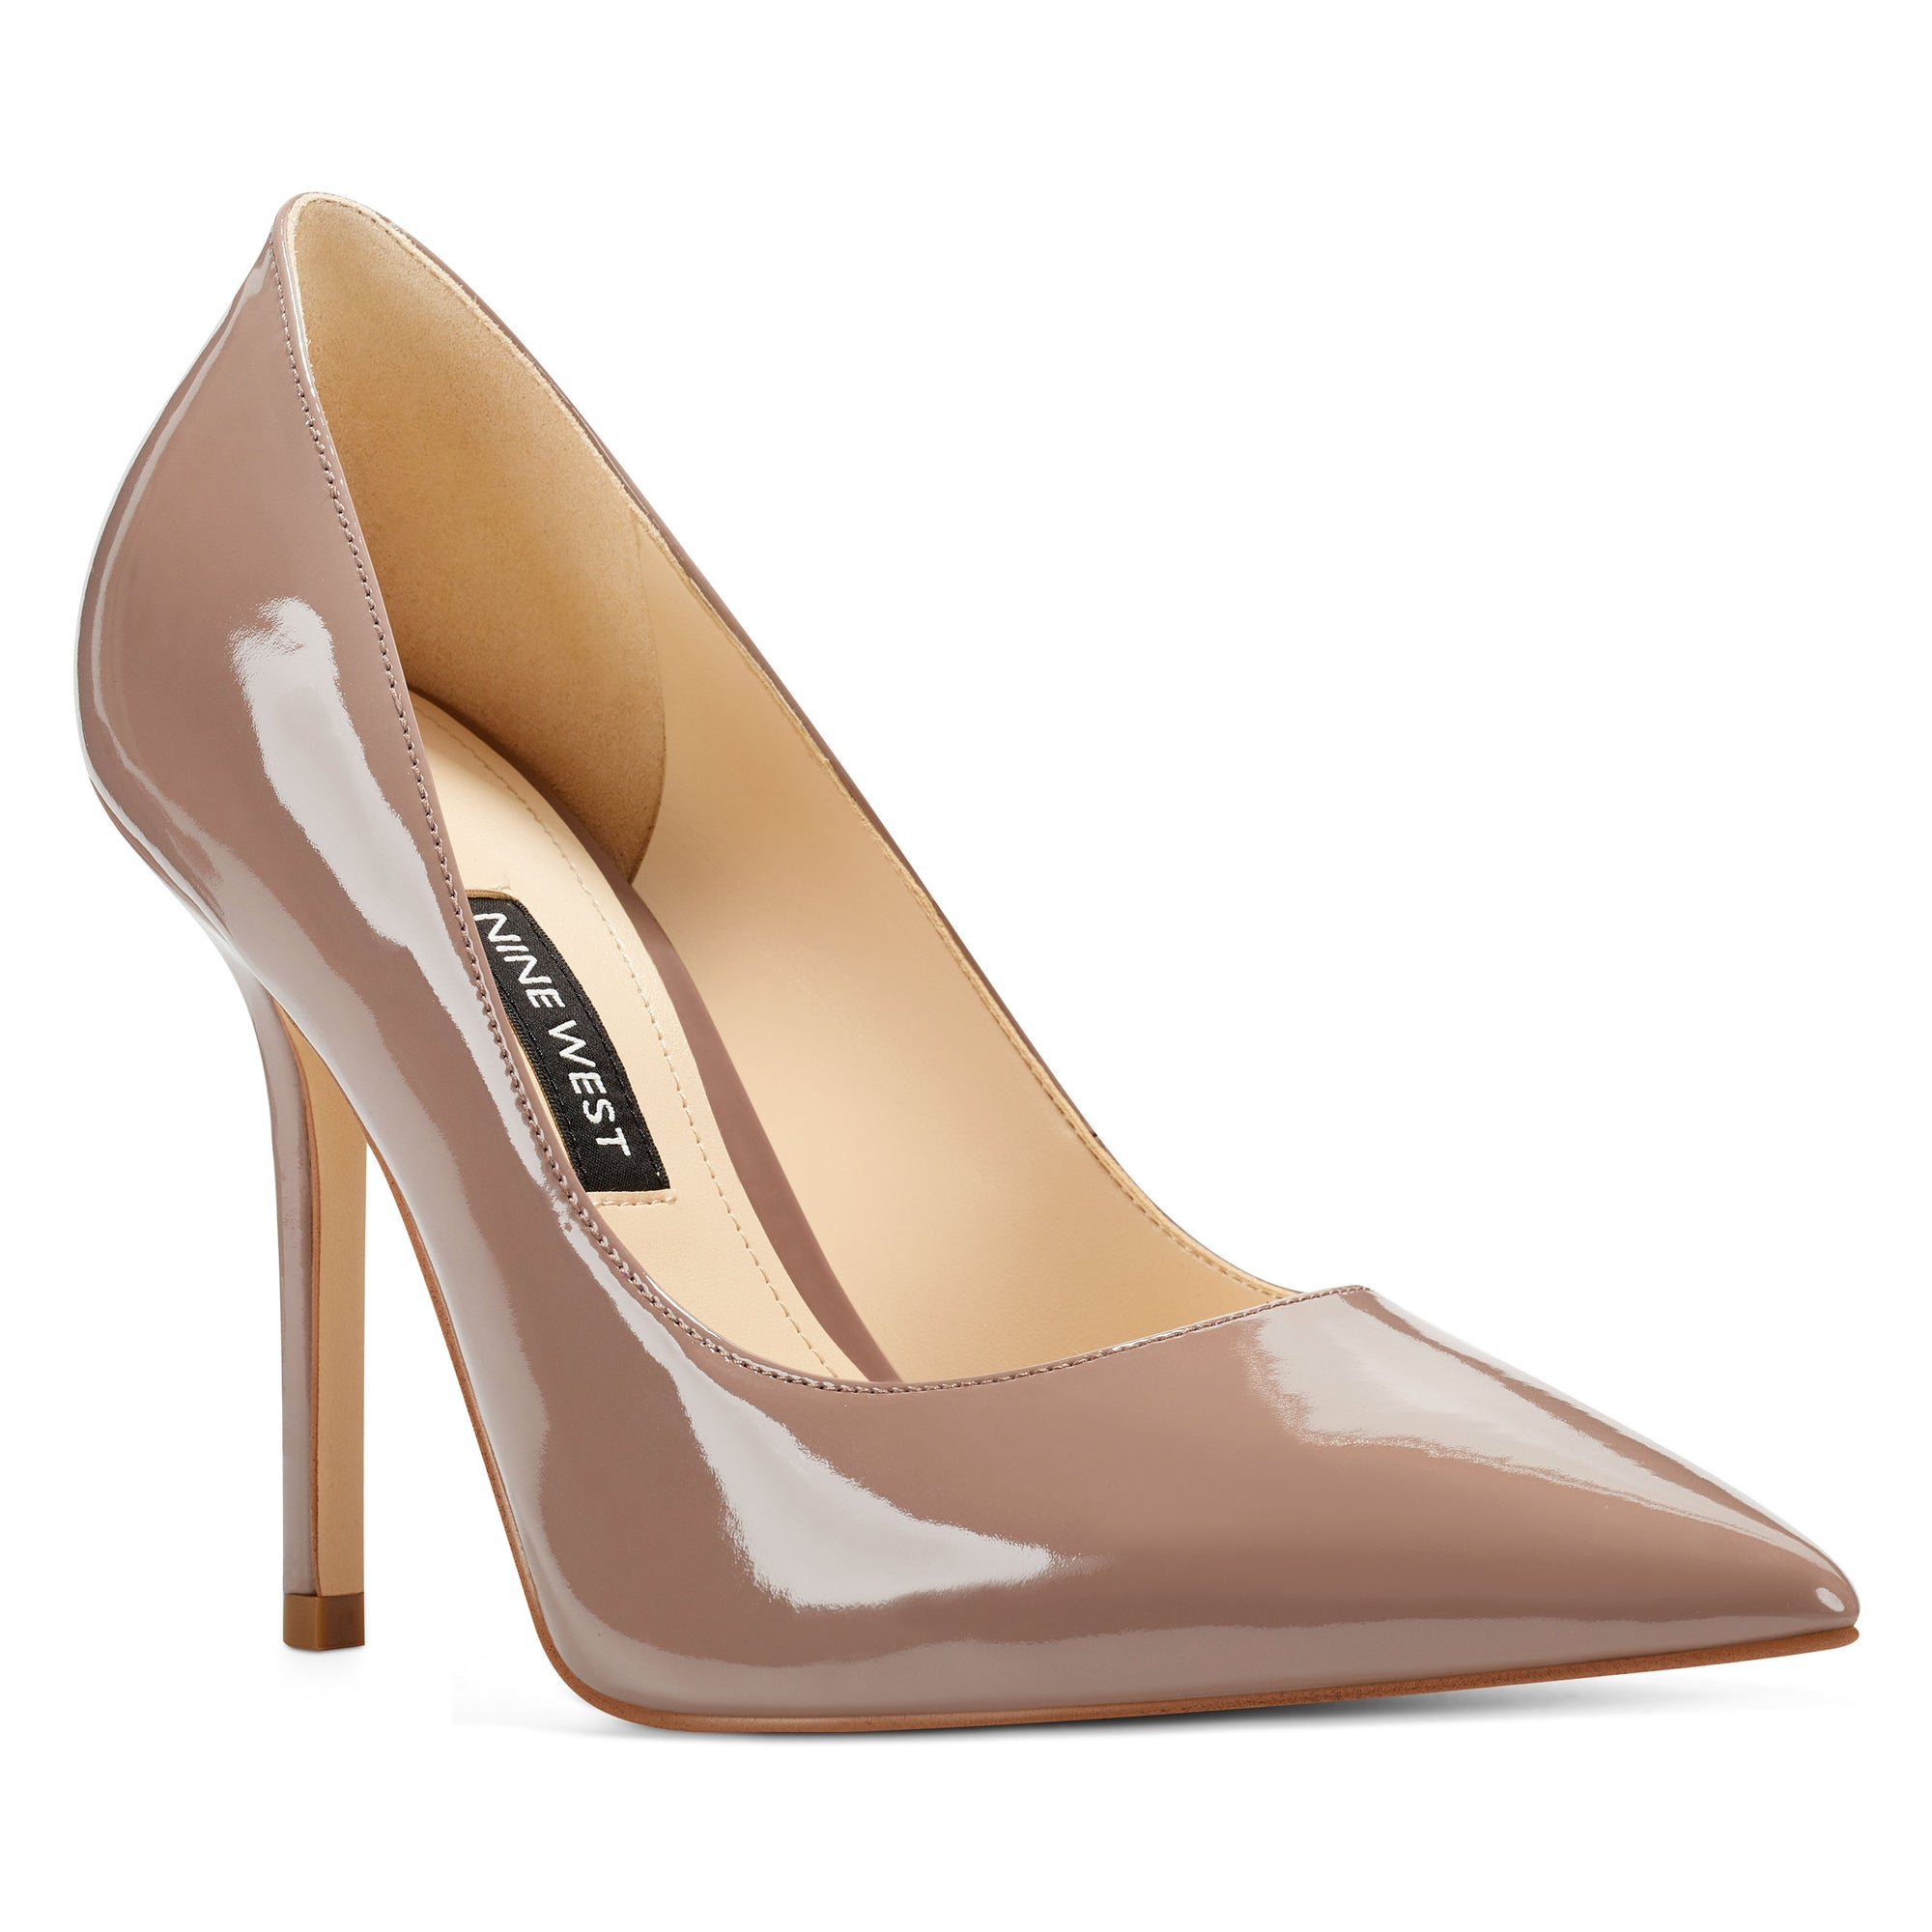 Bliss Pointy Toe Pumps - Nine West